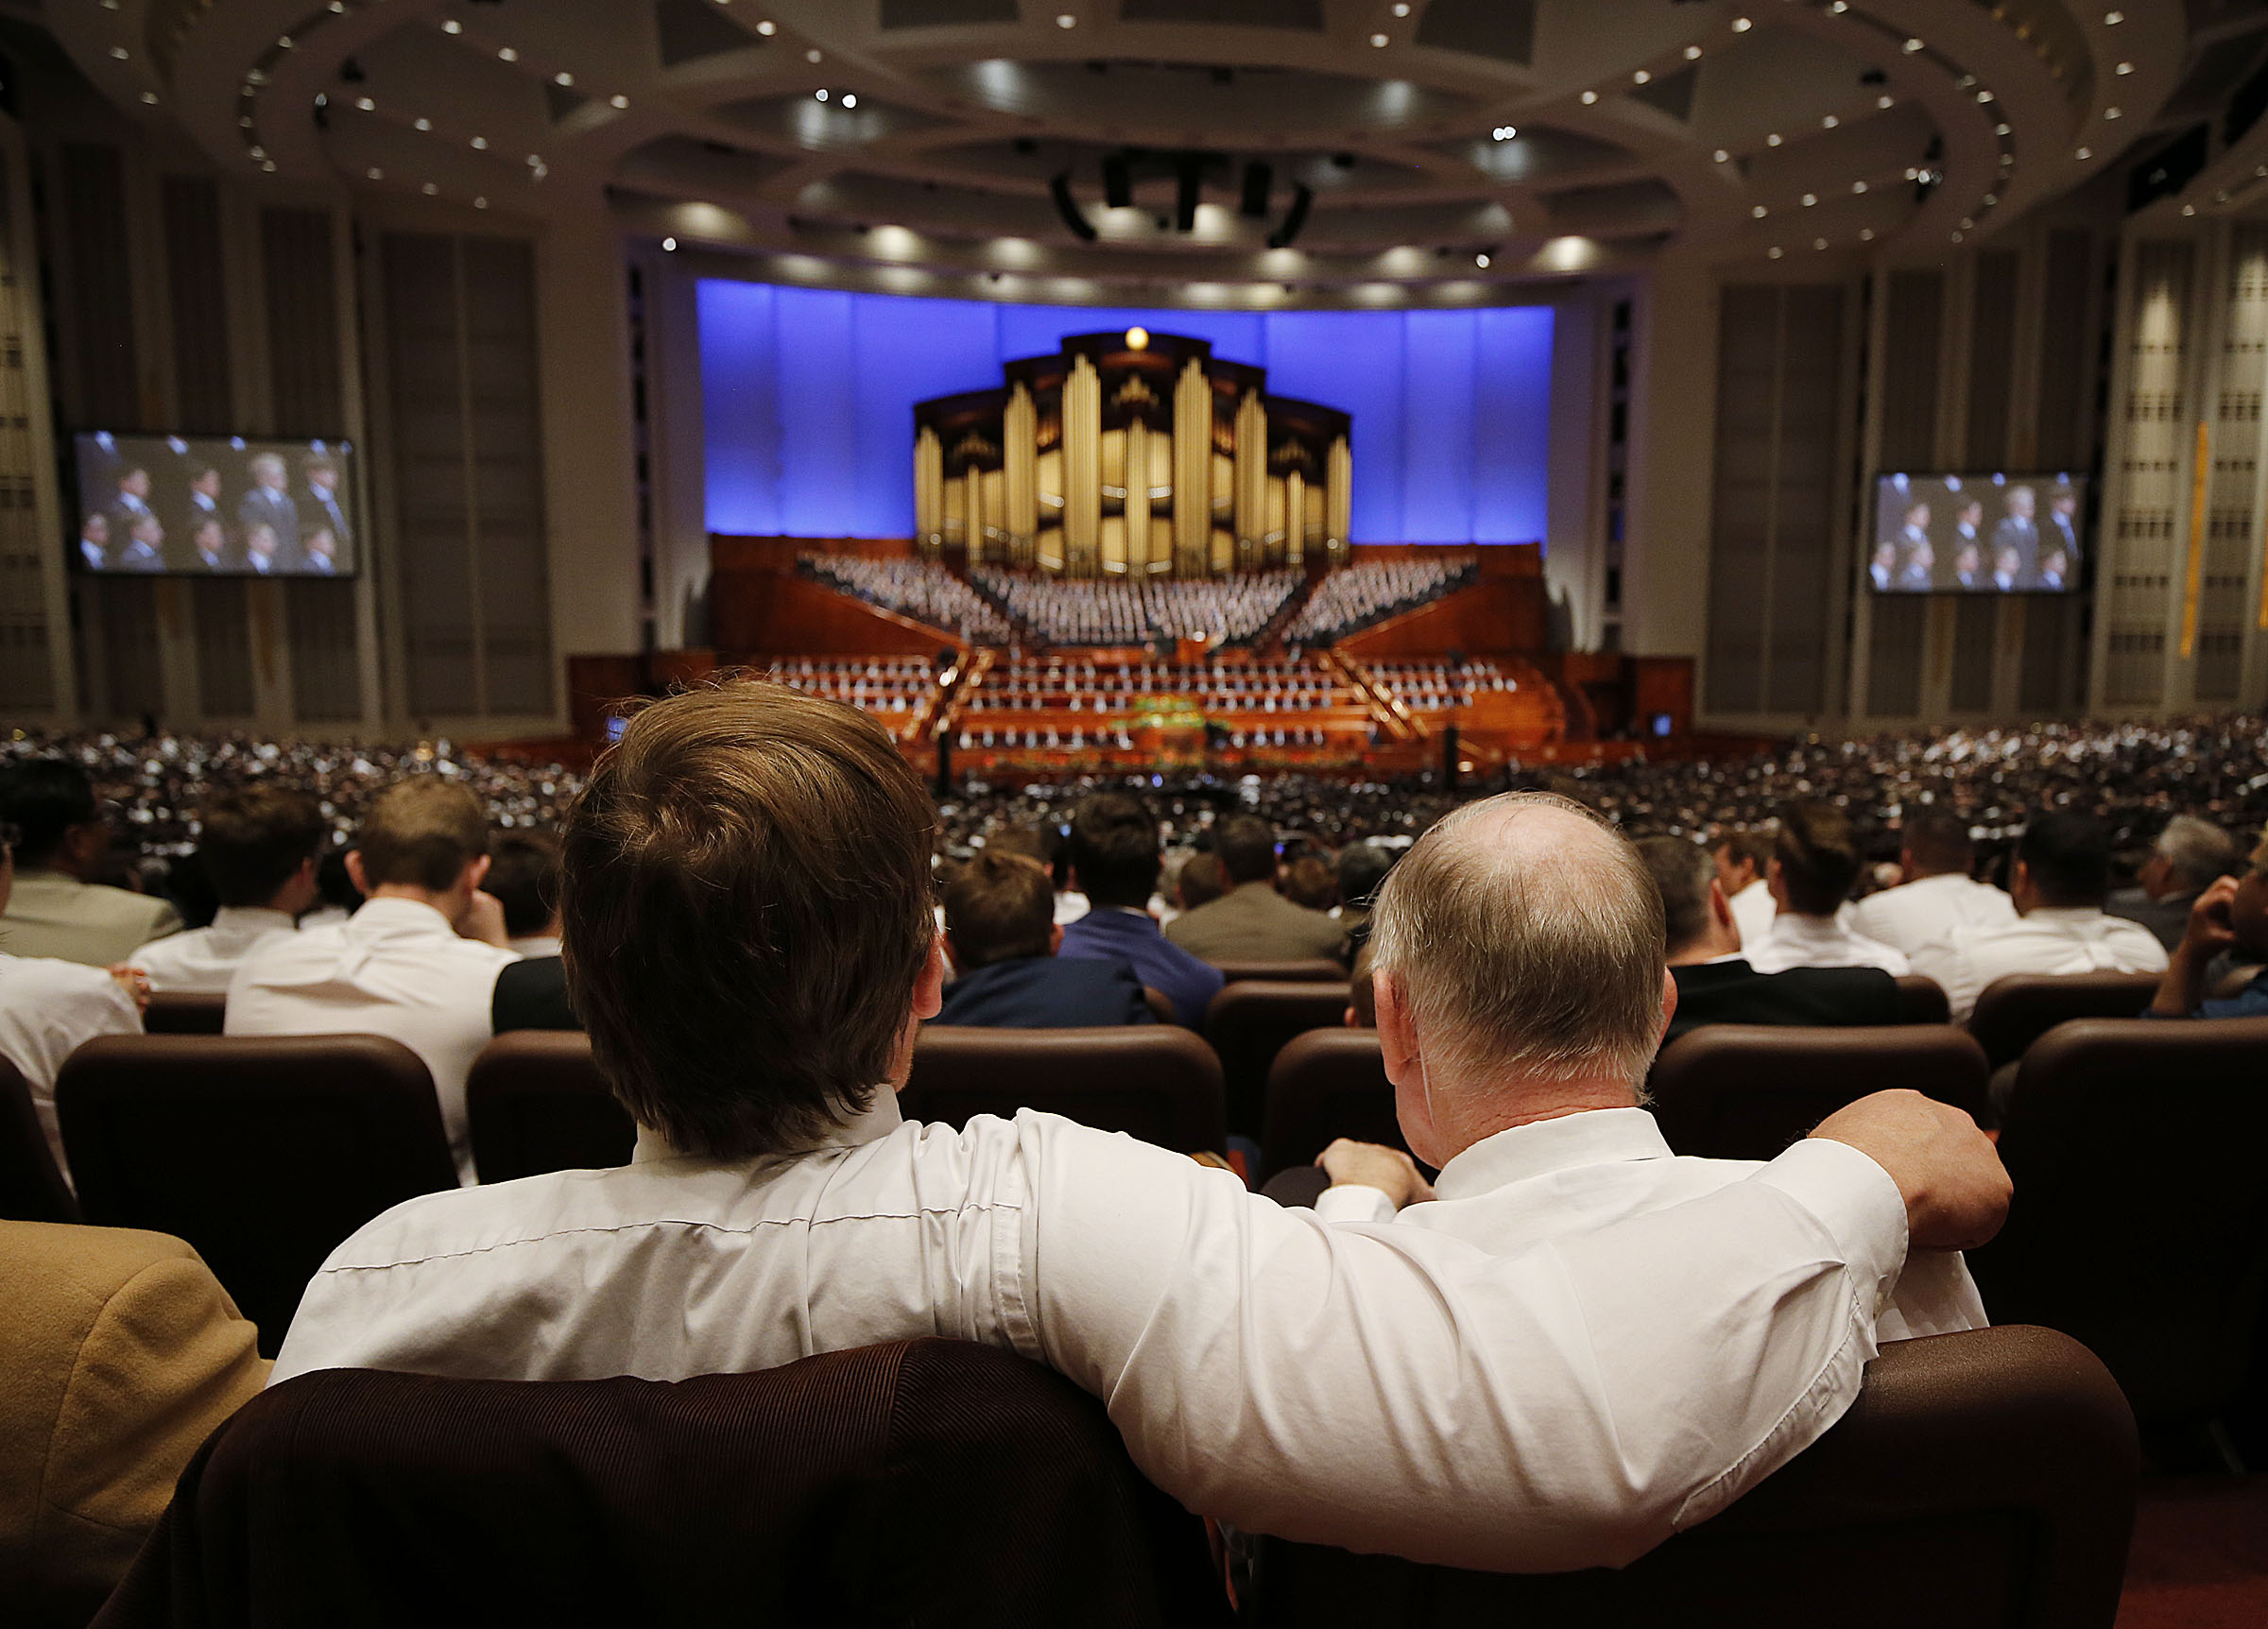 Johnny Walker, left, sits with his father, Andy, during the priesthood session of the 189th Annual General Conference of The Church of Jesus Christ of Latter-day Saints in the Conference Center in Salt Lake City on Saturday, April 6, 2019.